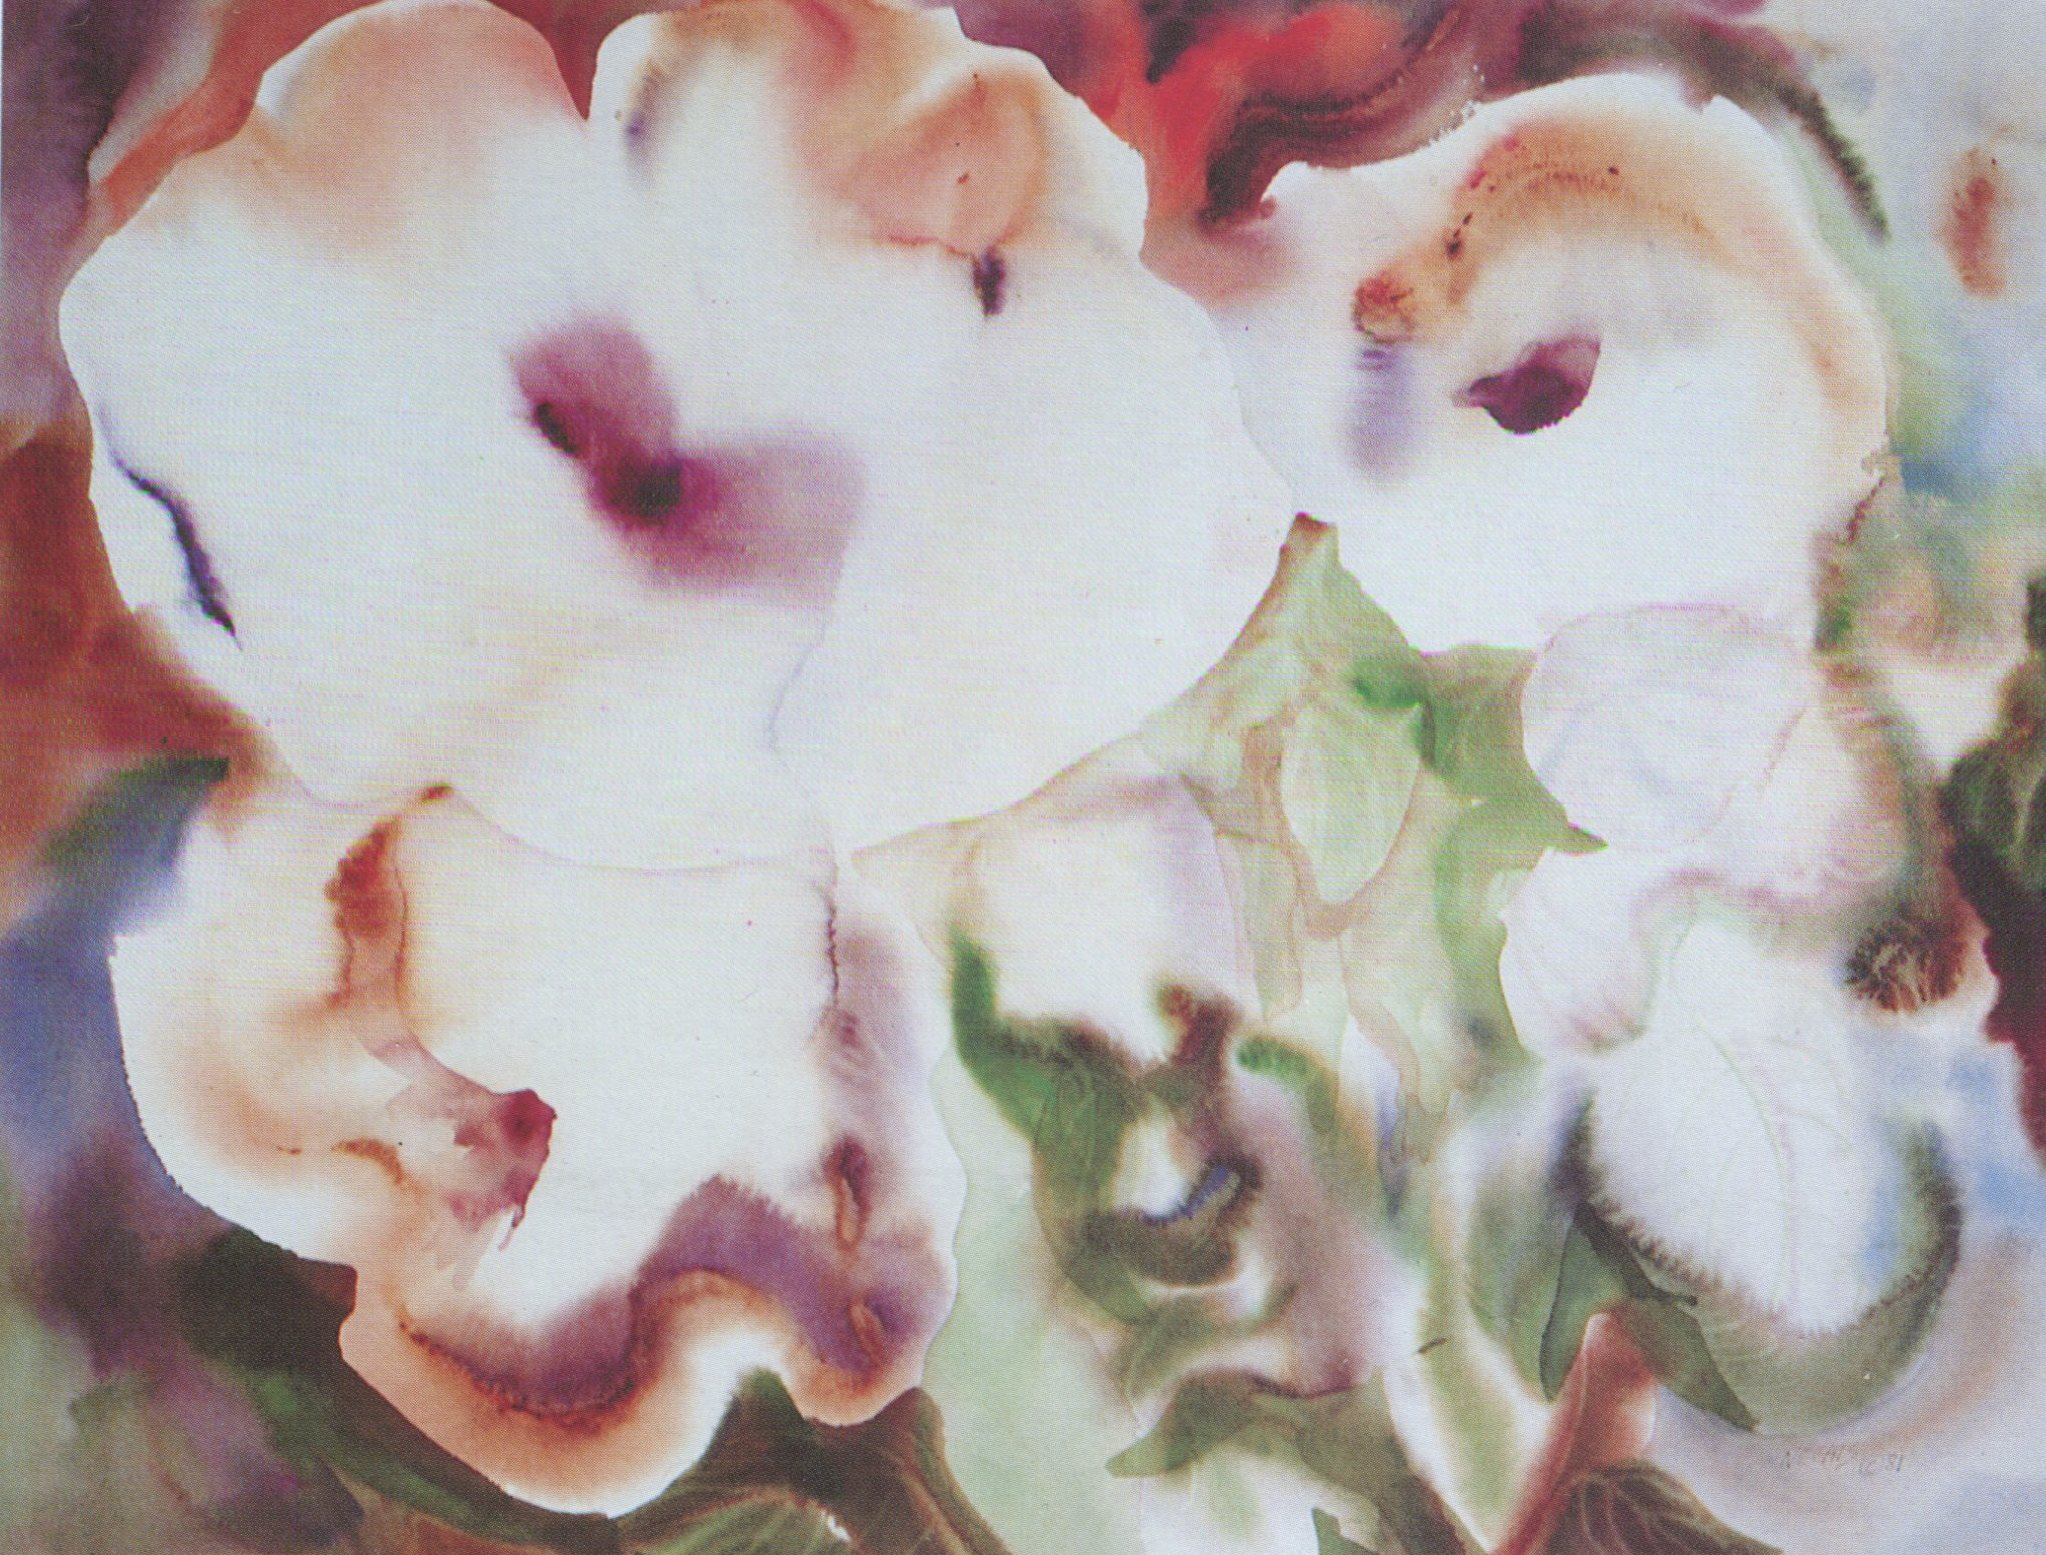 """The painting, """"Flower Power,"""" was just such an """"accident."""" Nechis writes: """"The white shape near the left edge, describing the turn of a petal, was the result of an uneven wetting of the paper. An unwetted spot remained white, so I made use of it."""" -"""